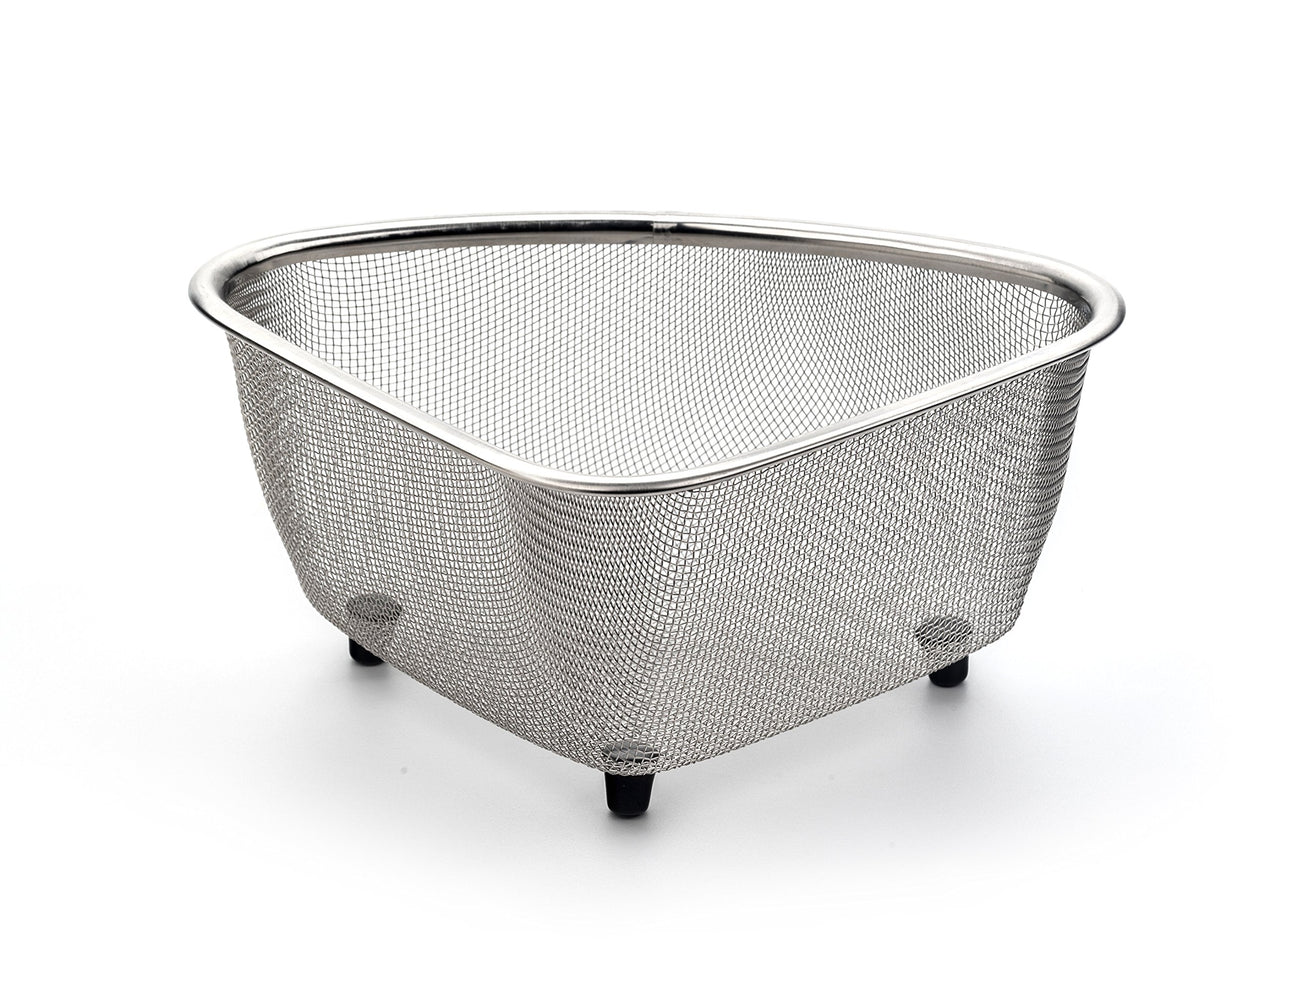 Endurarance In-Sink Mesh Basket